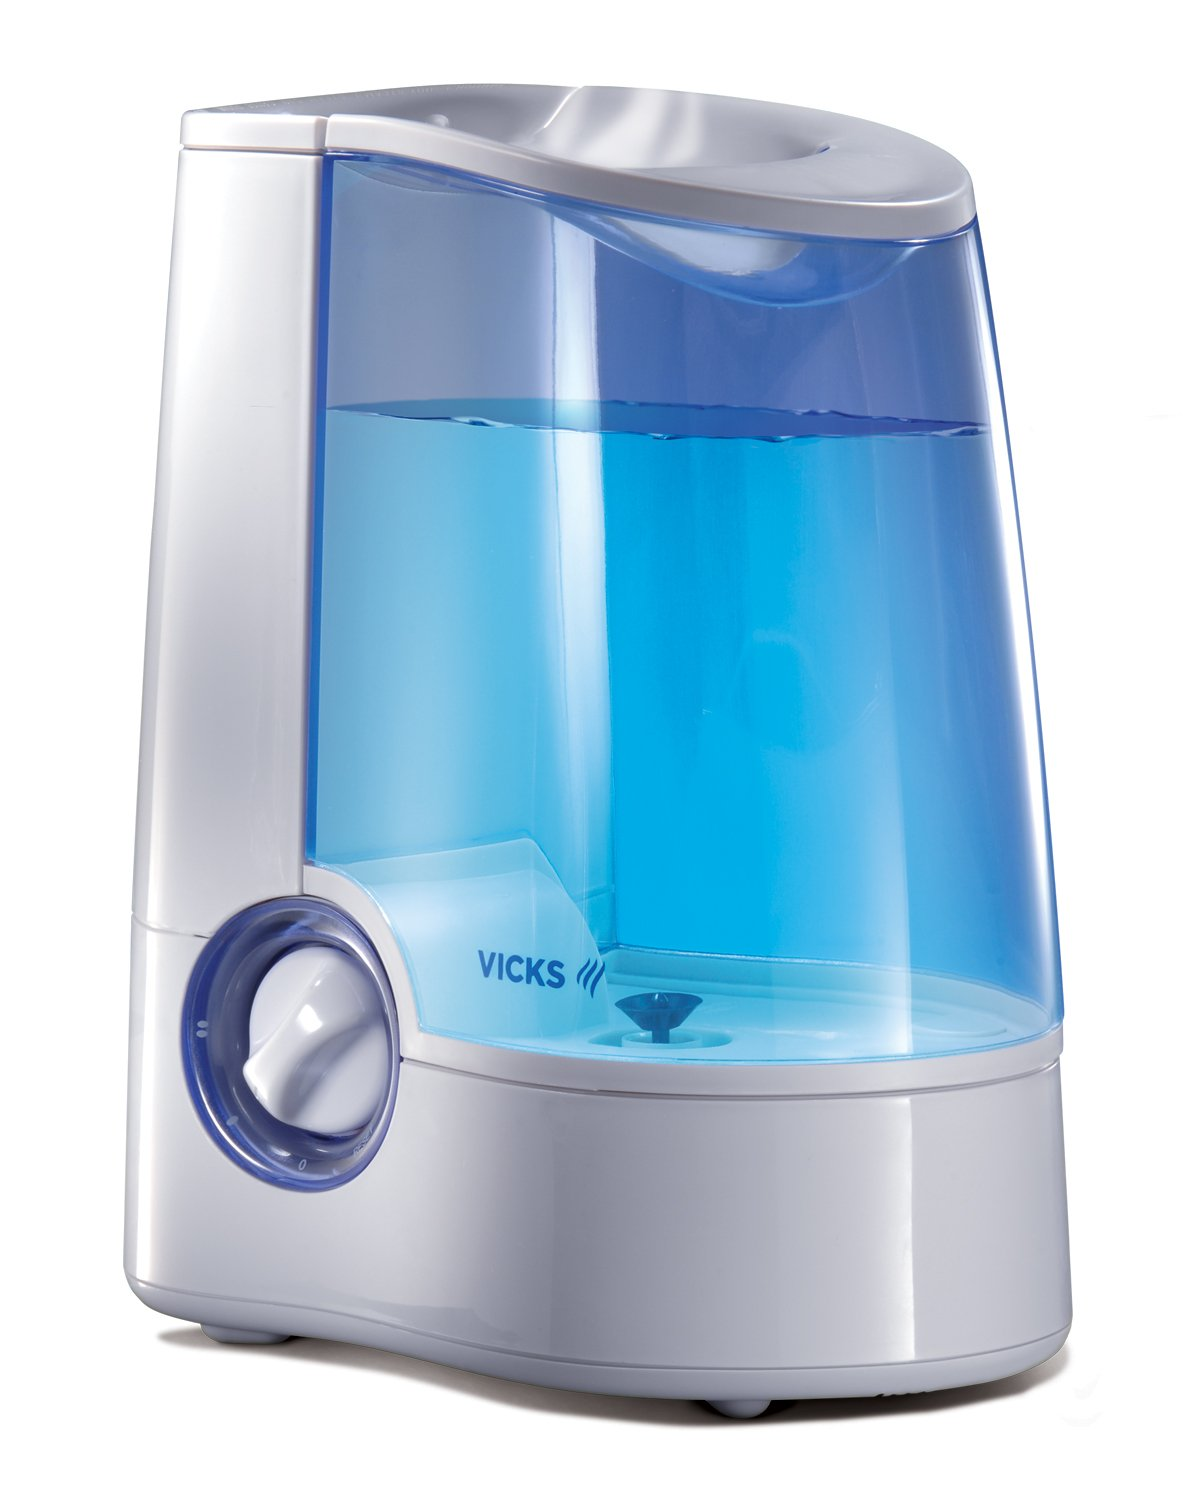 Vicks Warm Mist Humidifier Review